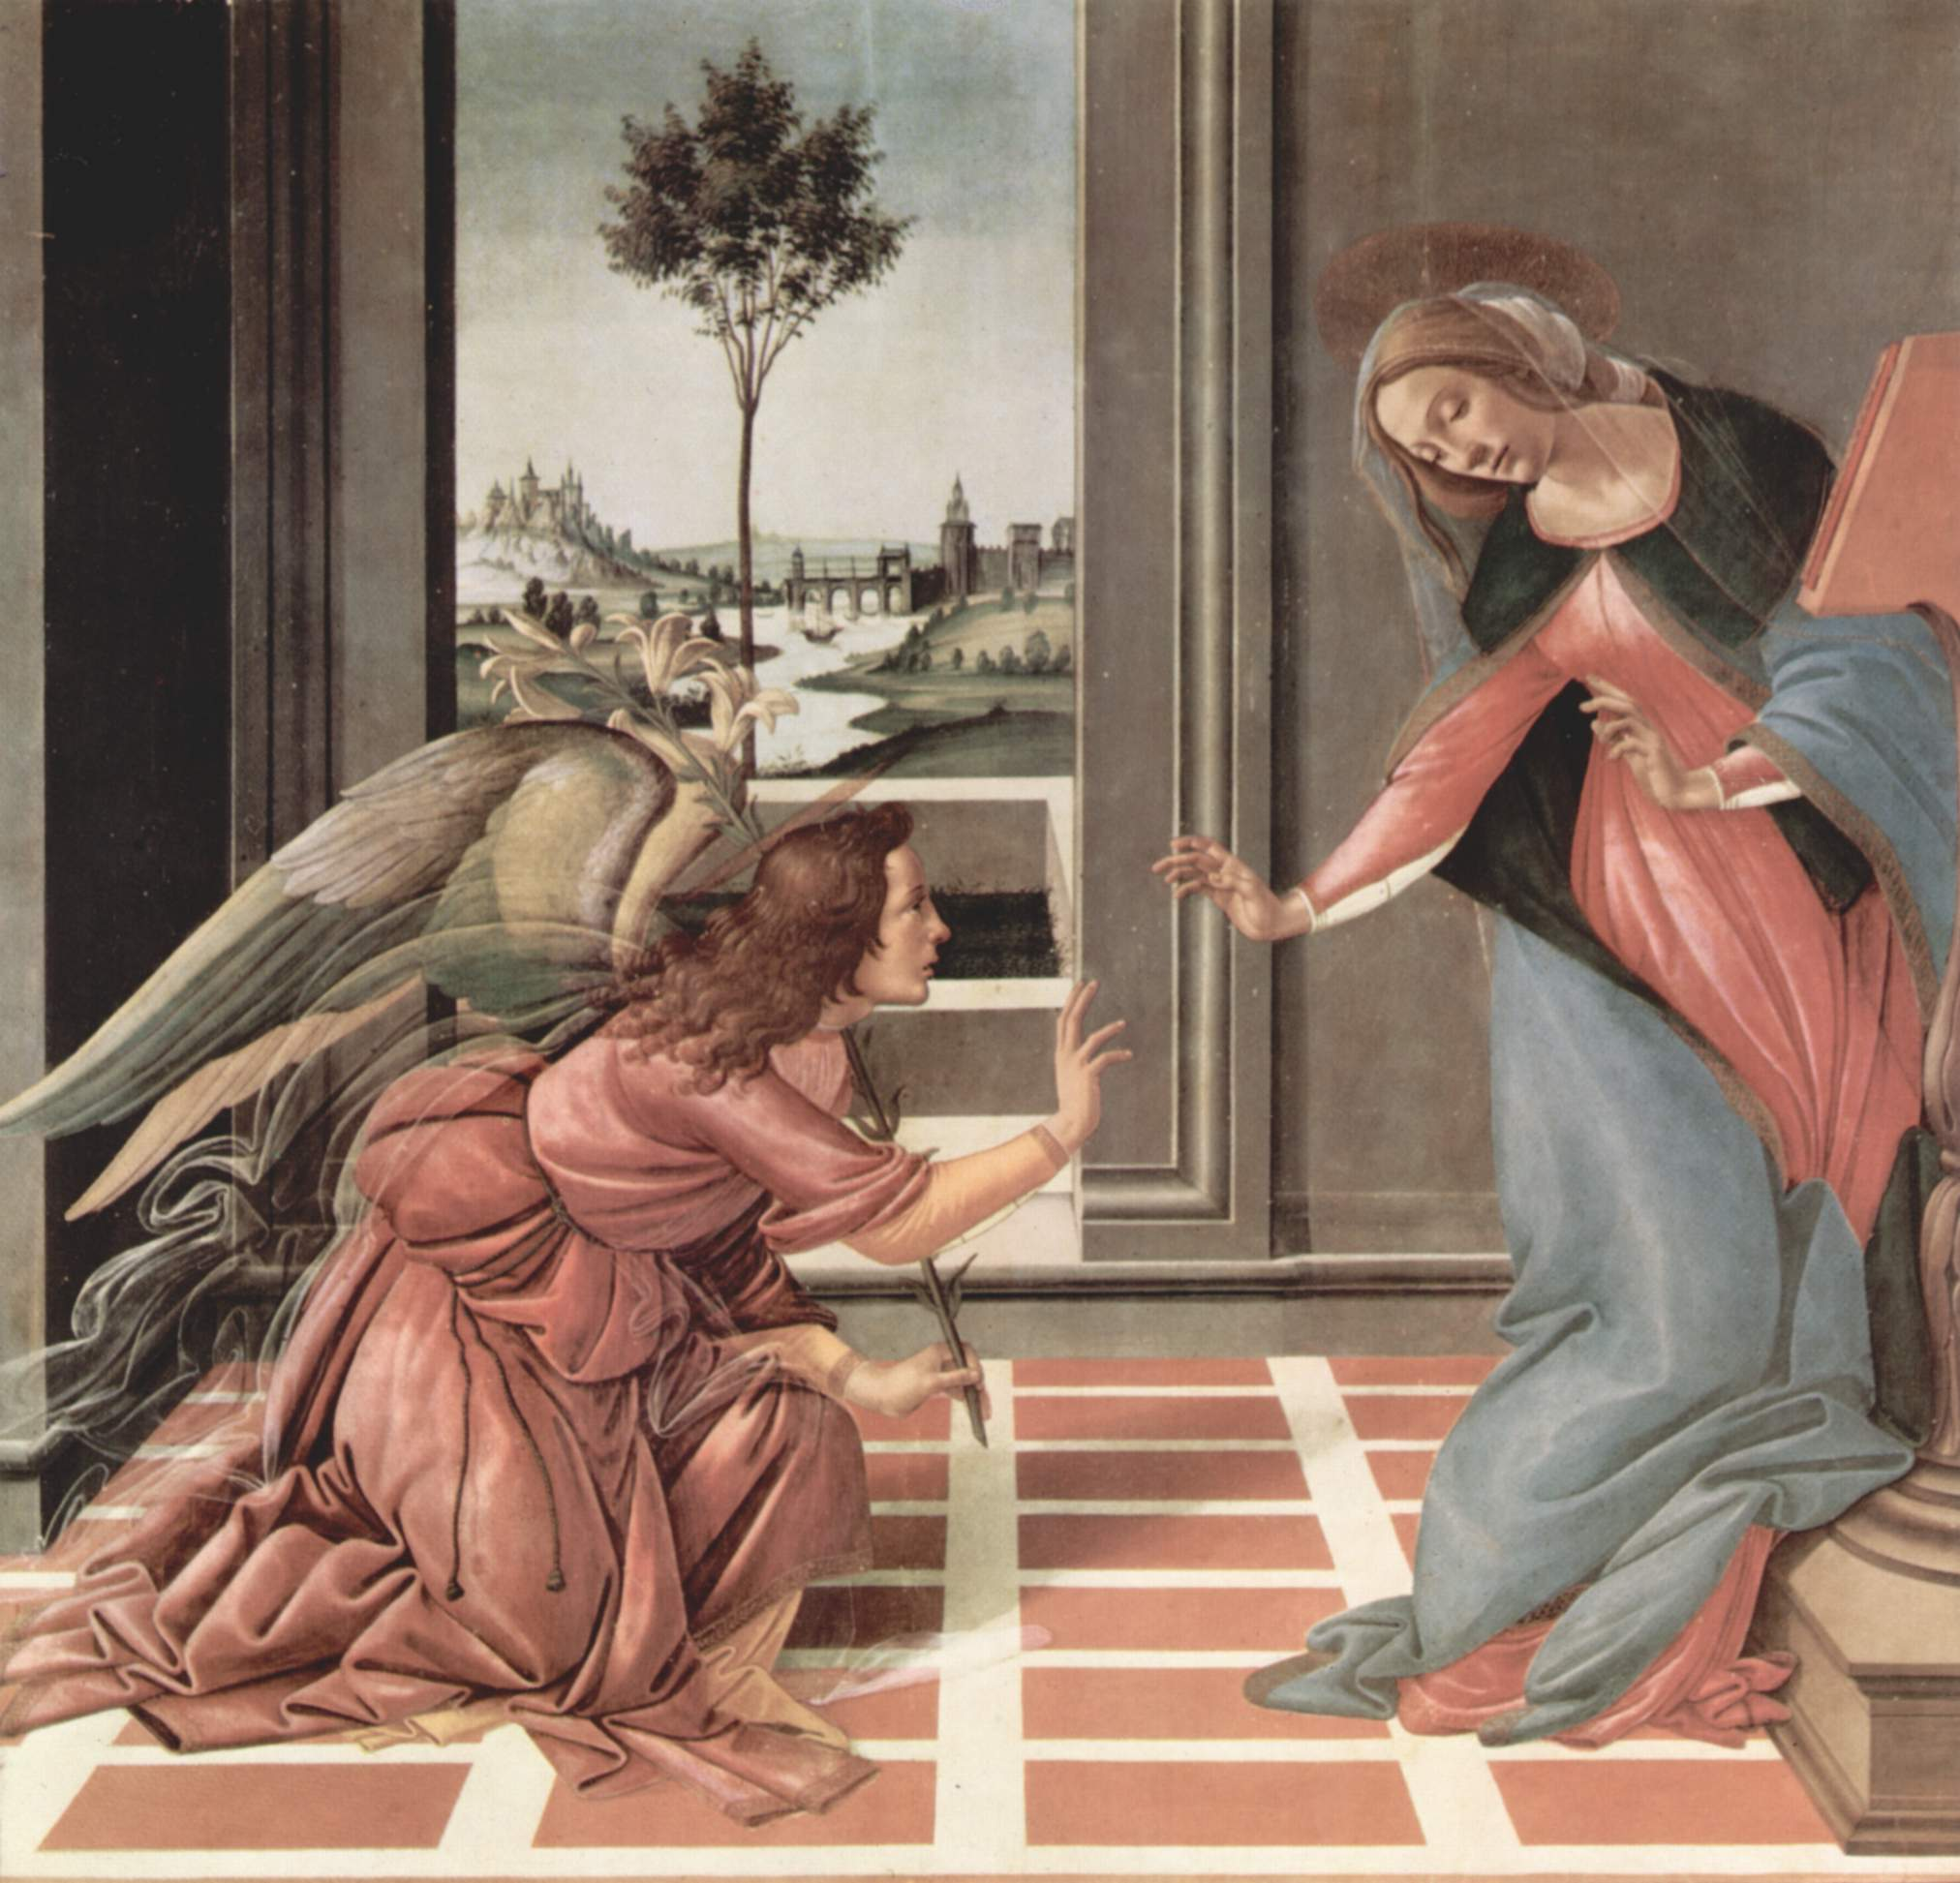 Sandro Botticelli, The Cestello Annunciation, 1489-90